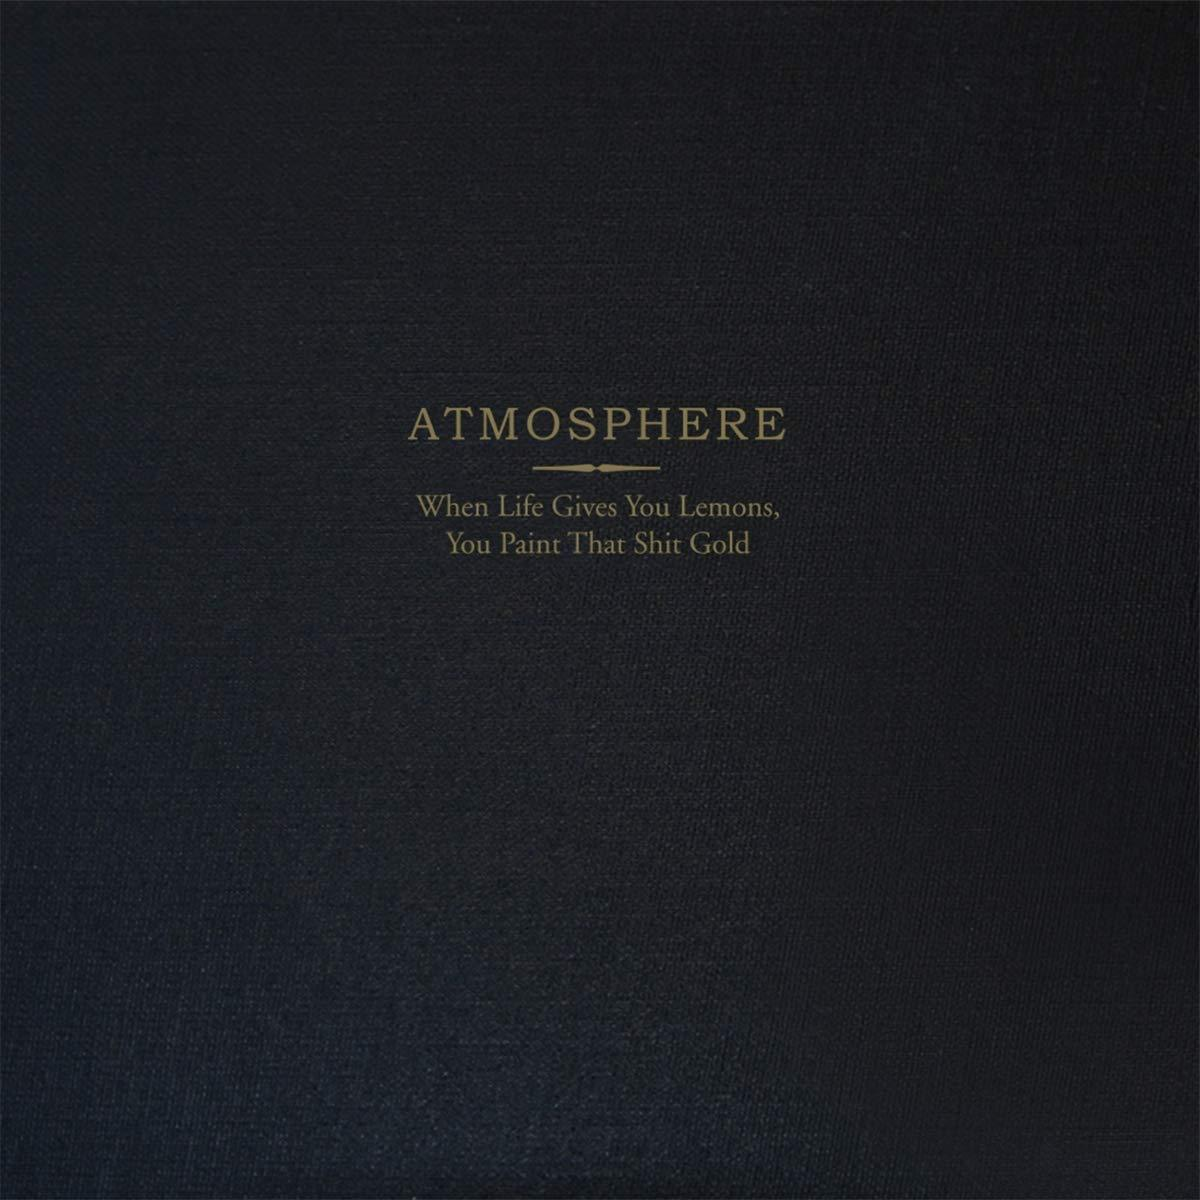 Atmosphere - When Life Gives You Lemons, You Paint That Shit Gold (Deluxe) [2LP]